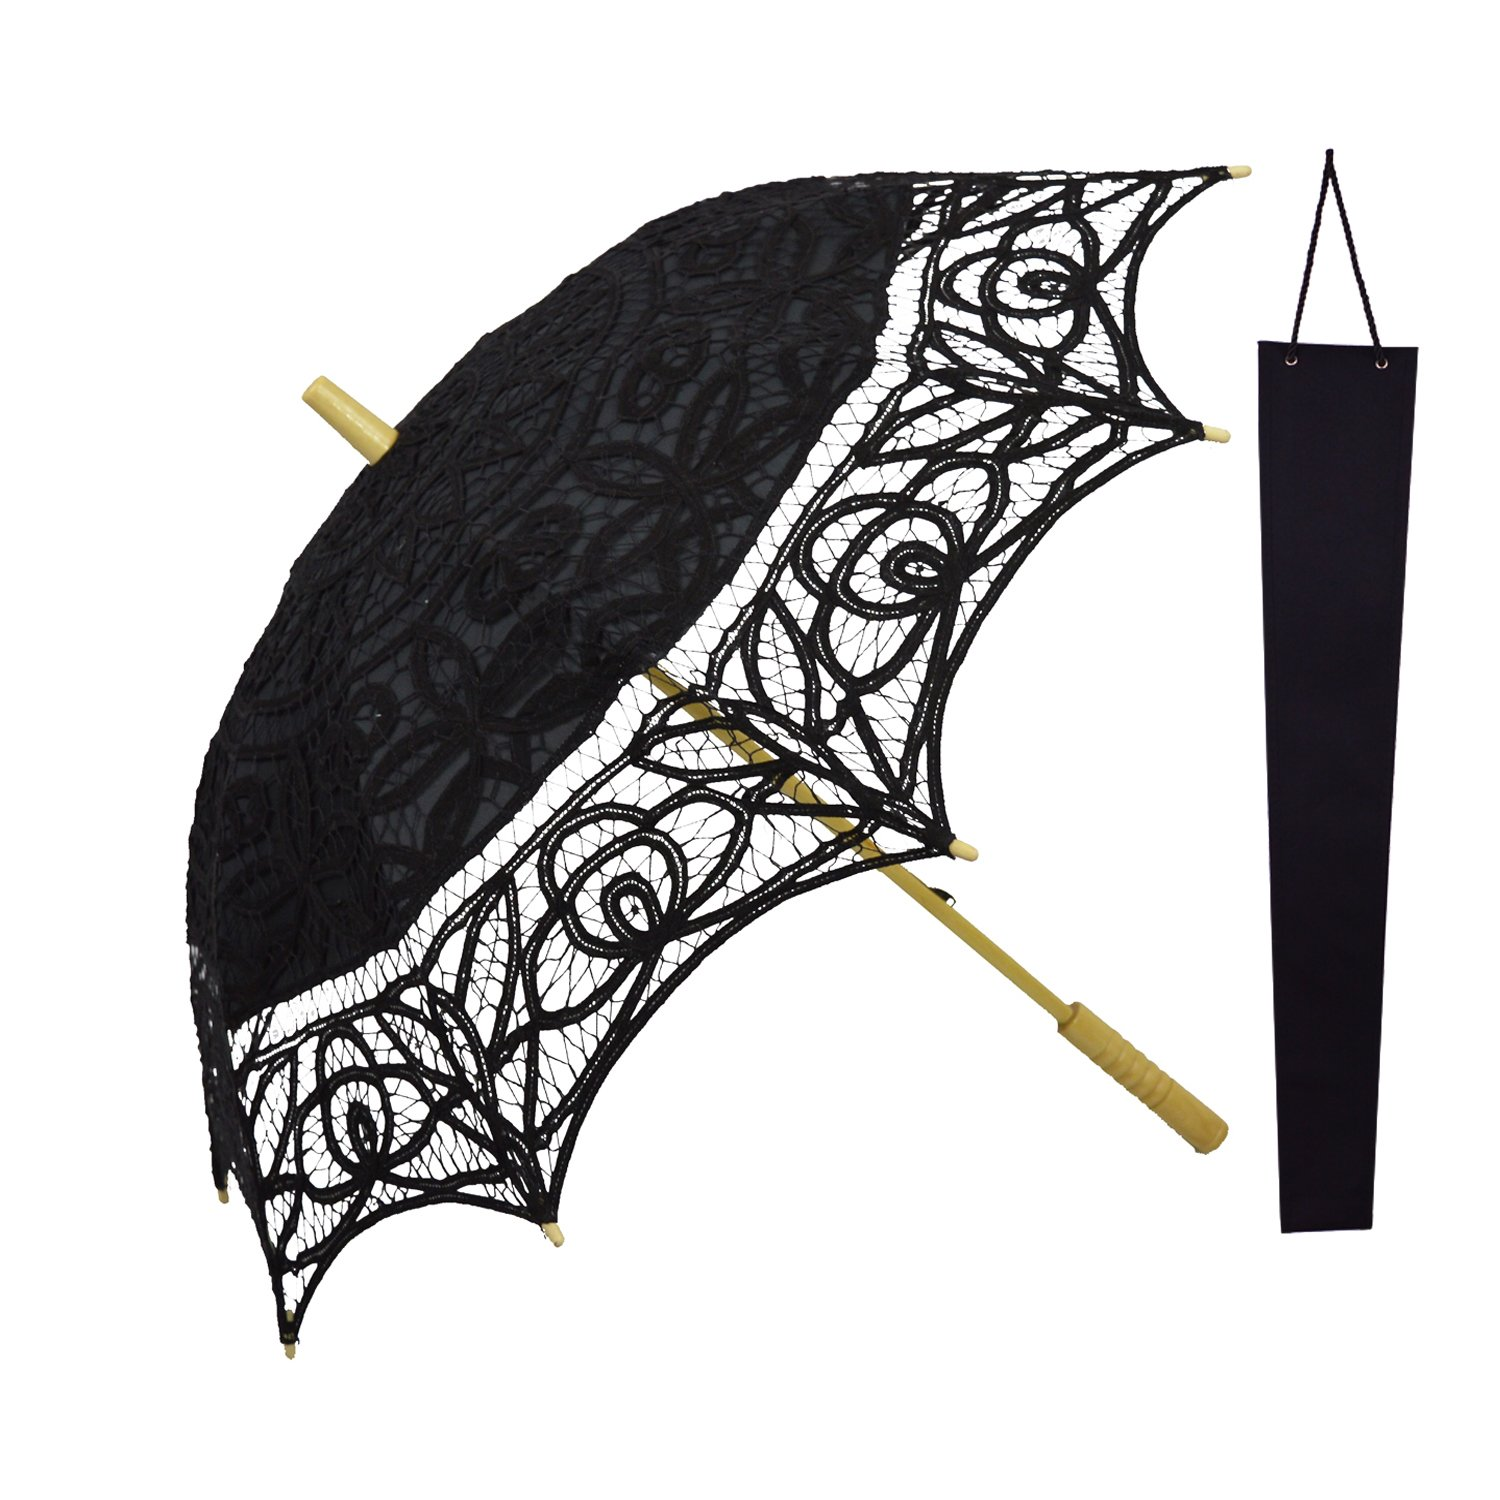 6521b201f Get Quotations · KAKOO Lace Parasol Umbrella Vintage Victorian Cotton Lace  Parasol With Protective Sleeve For Wedding Party Decoration